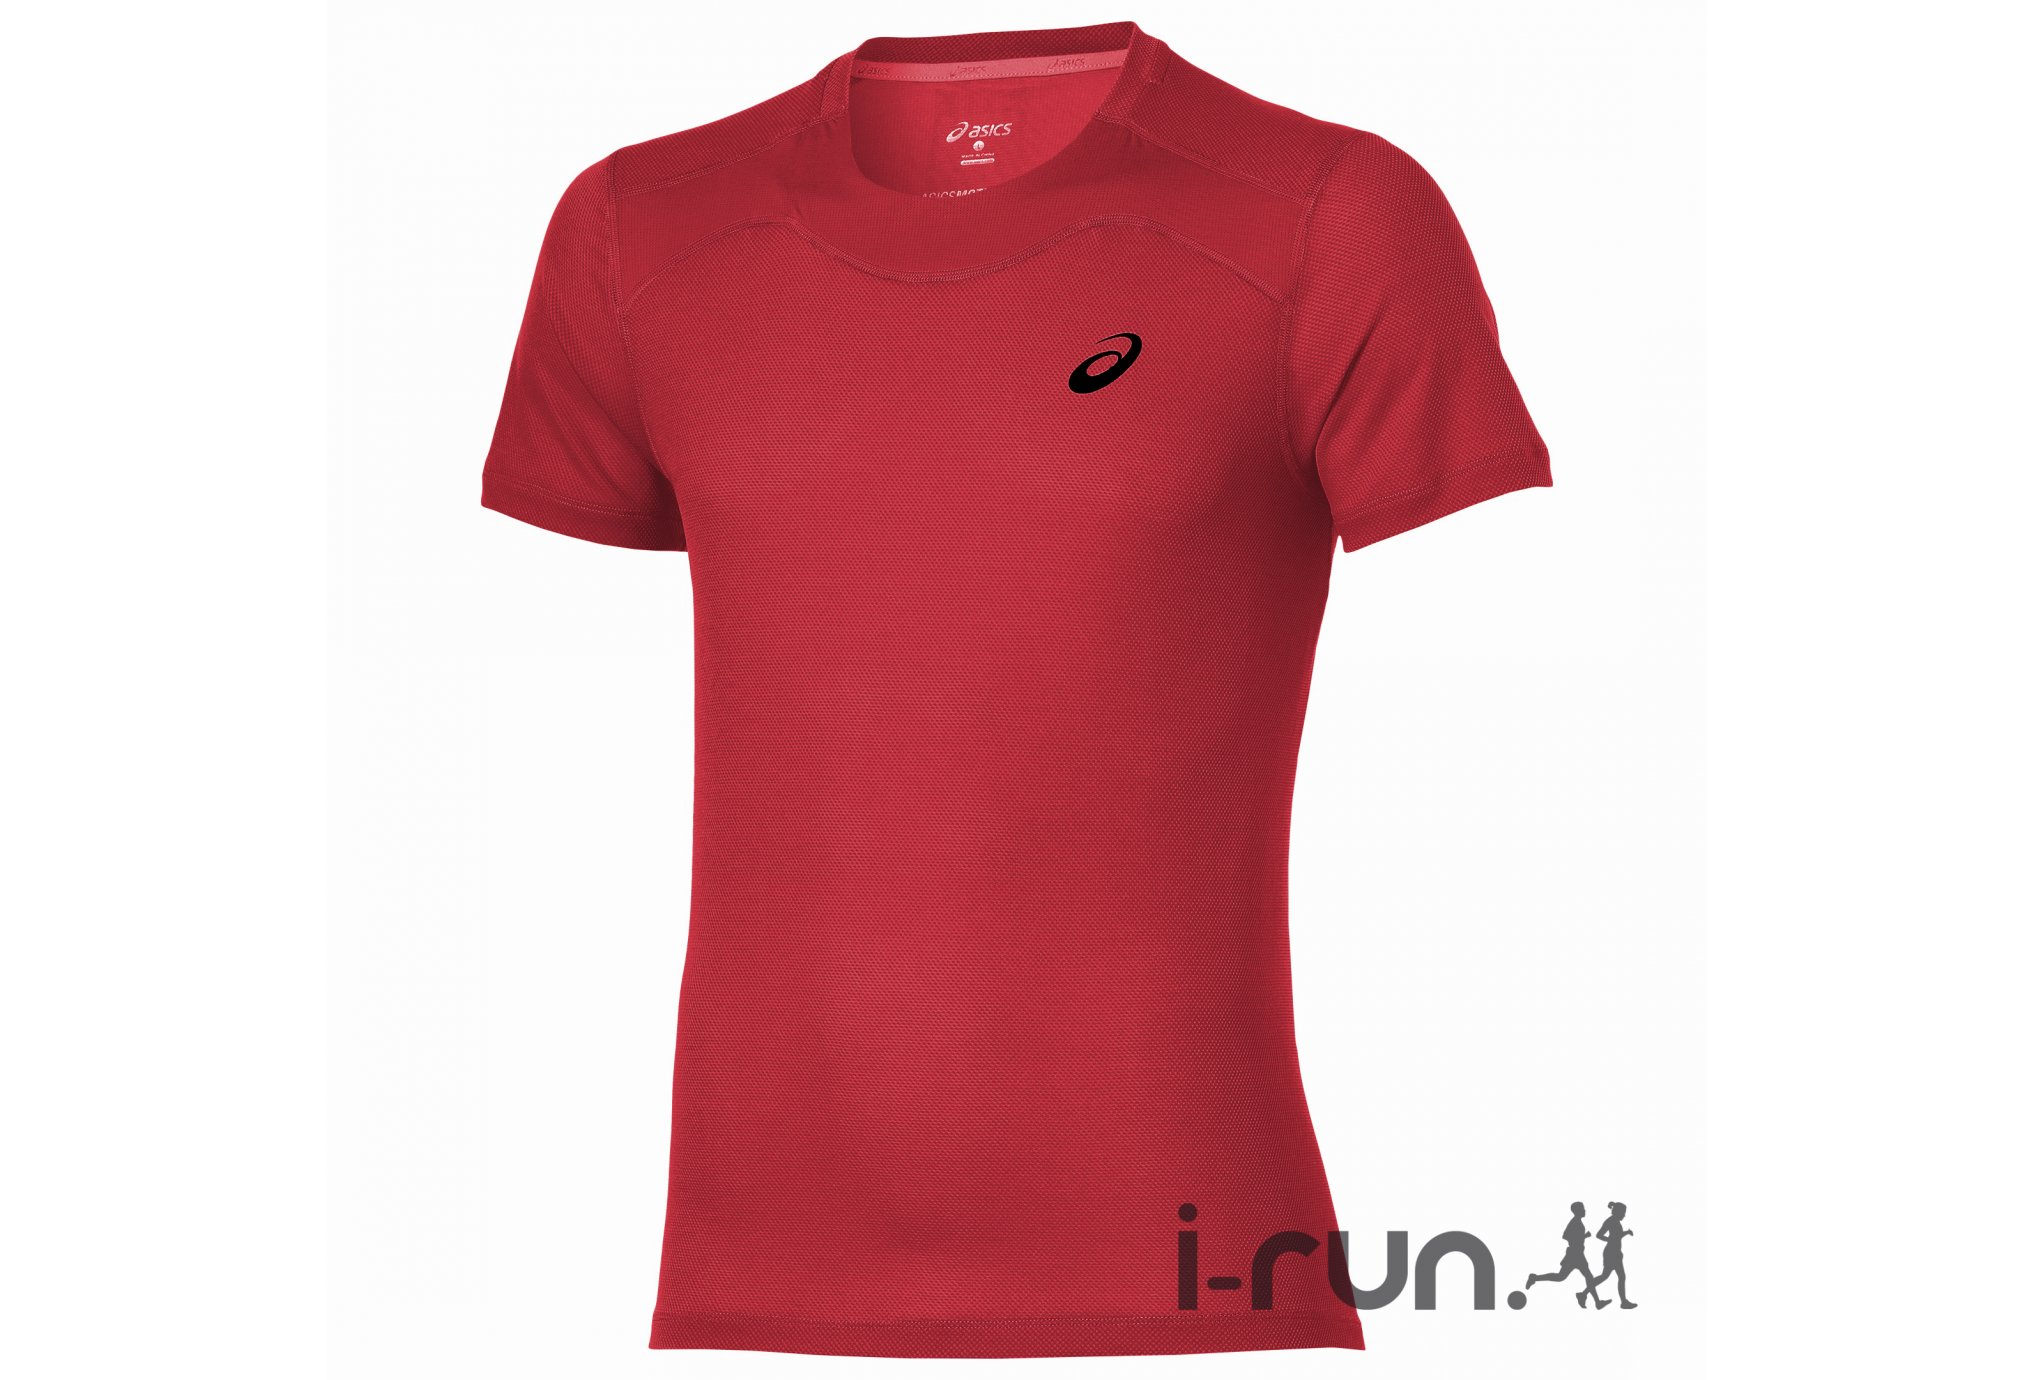 Asics Tee-shirt Race M vêtement running homme